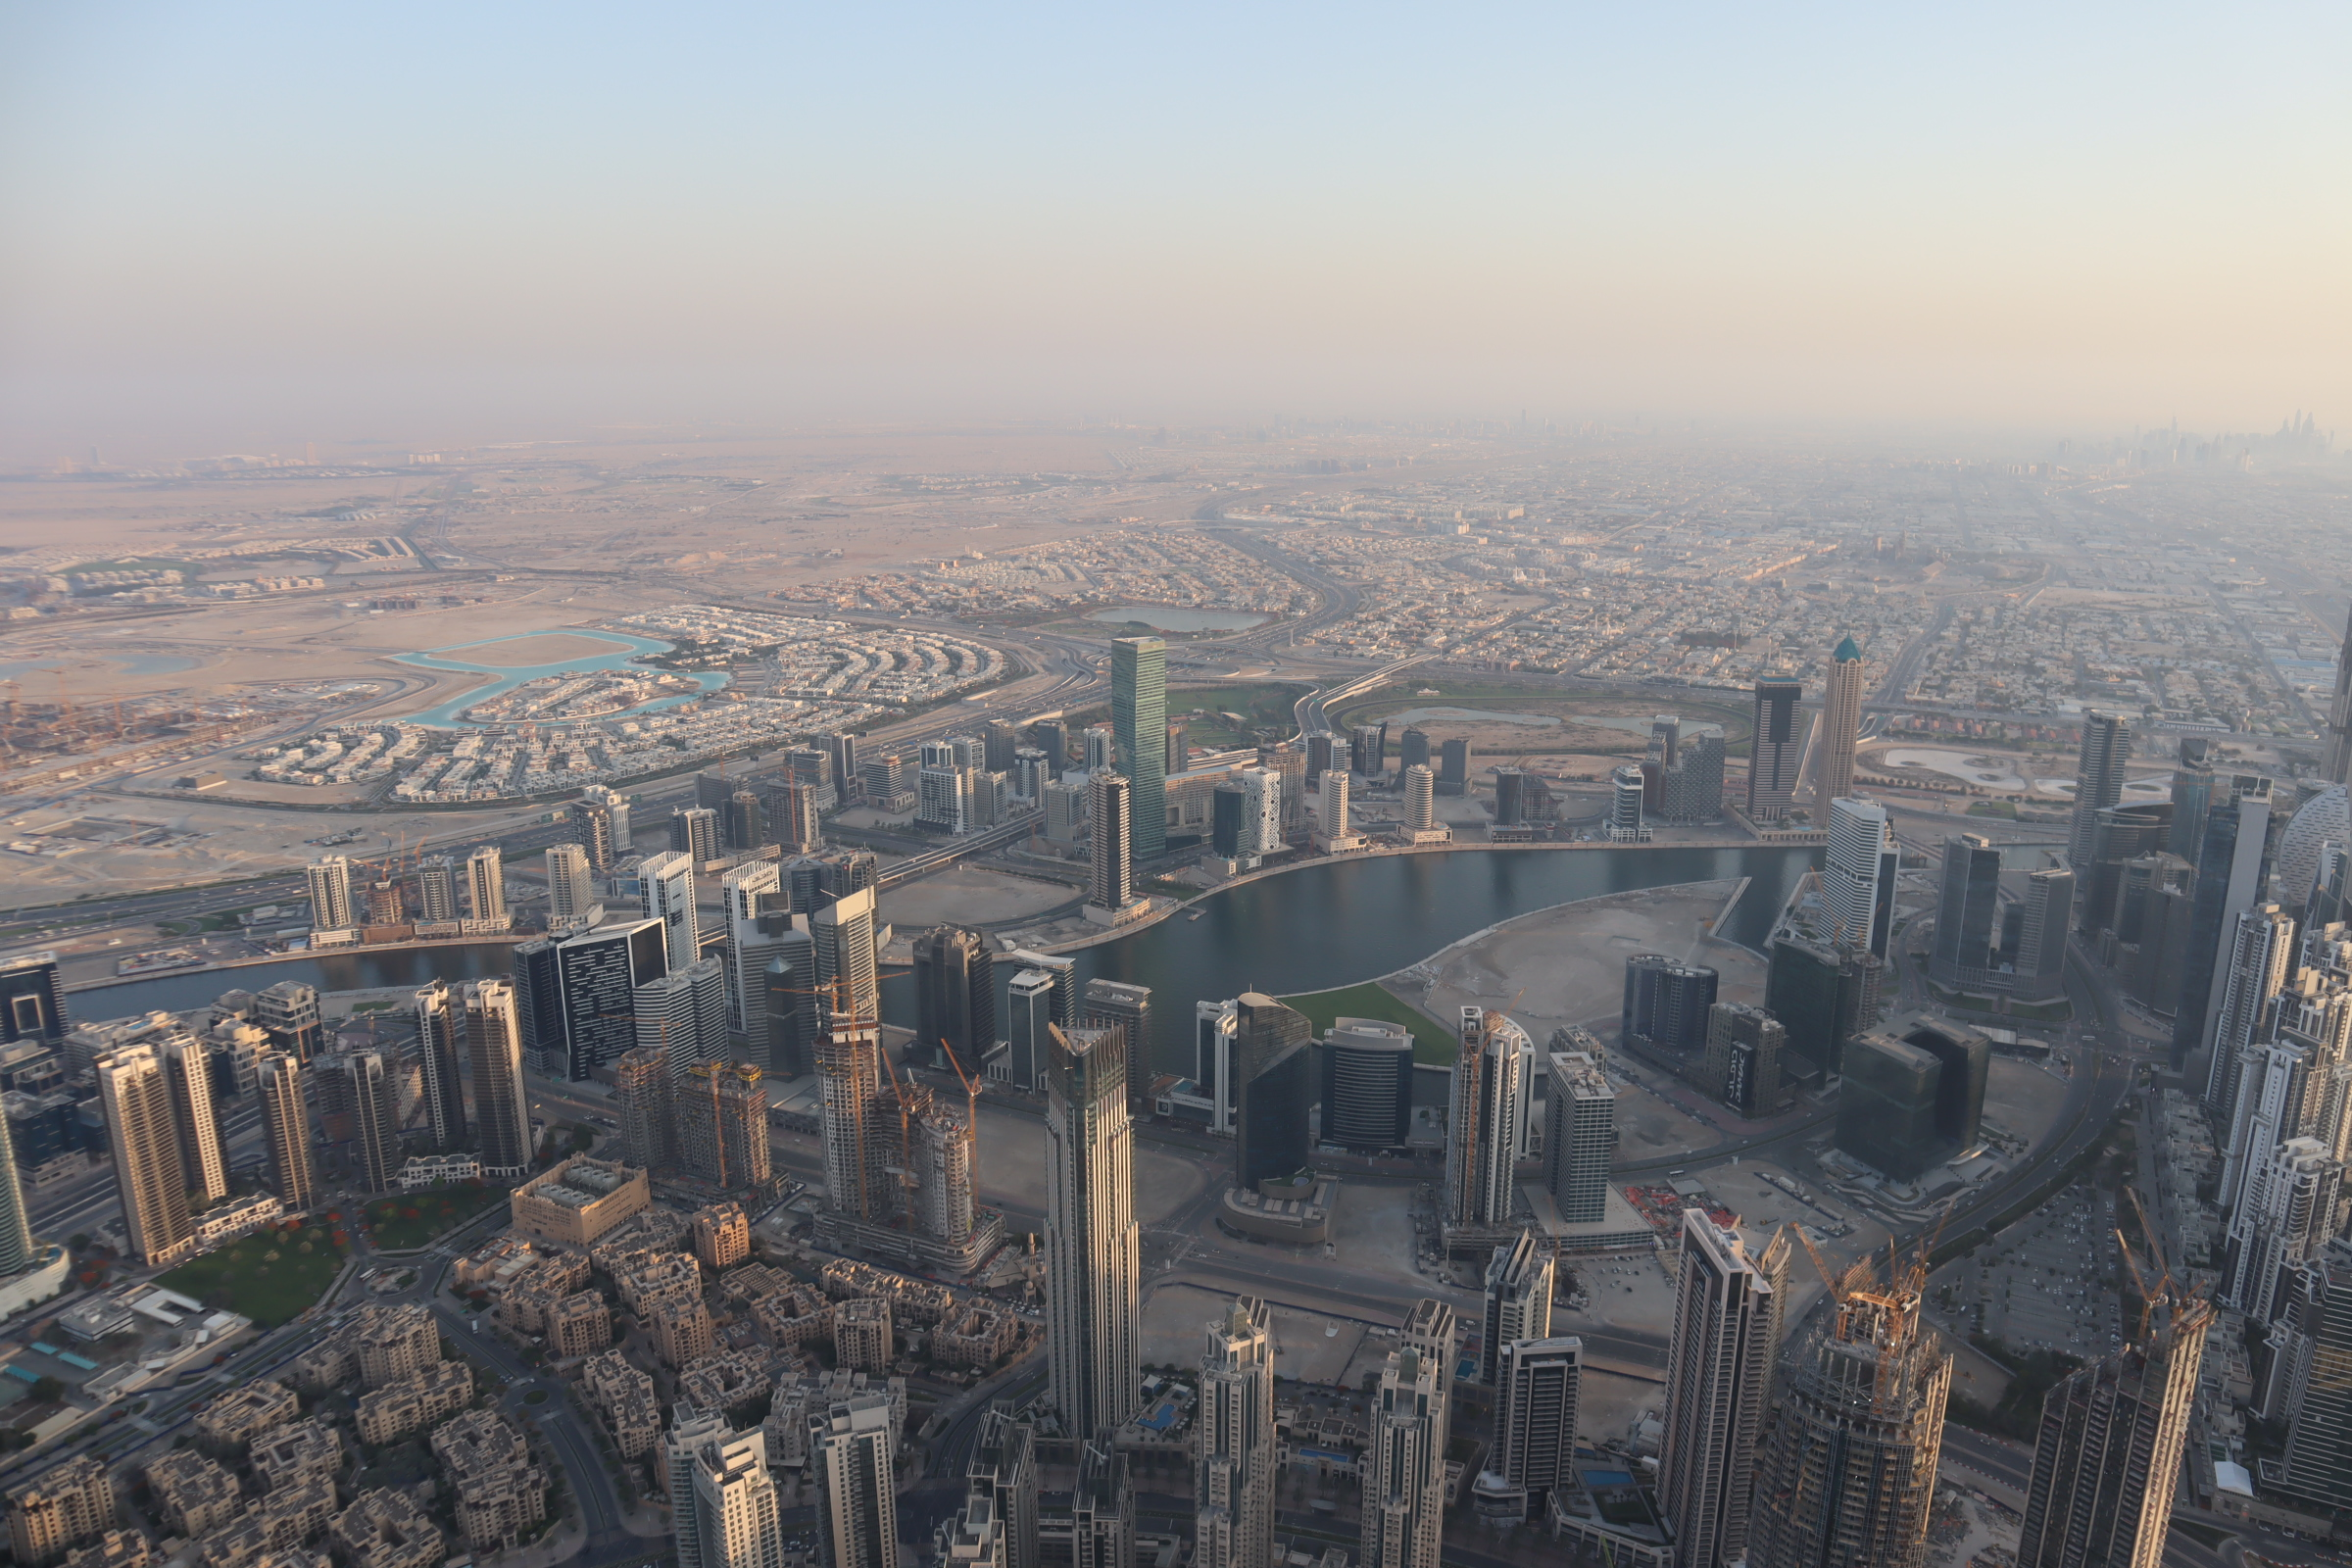 Views from the 148th floor of the Burj Khalifa